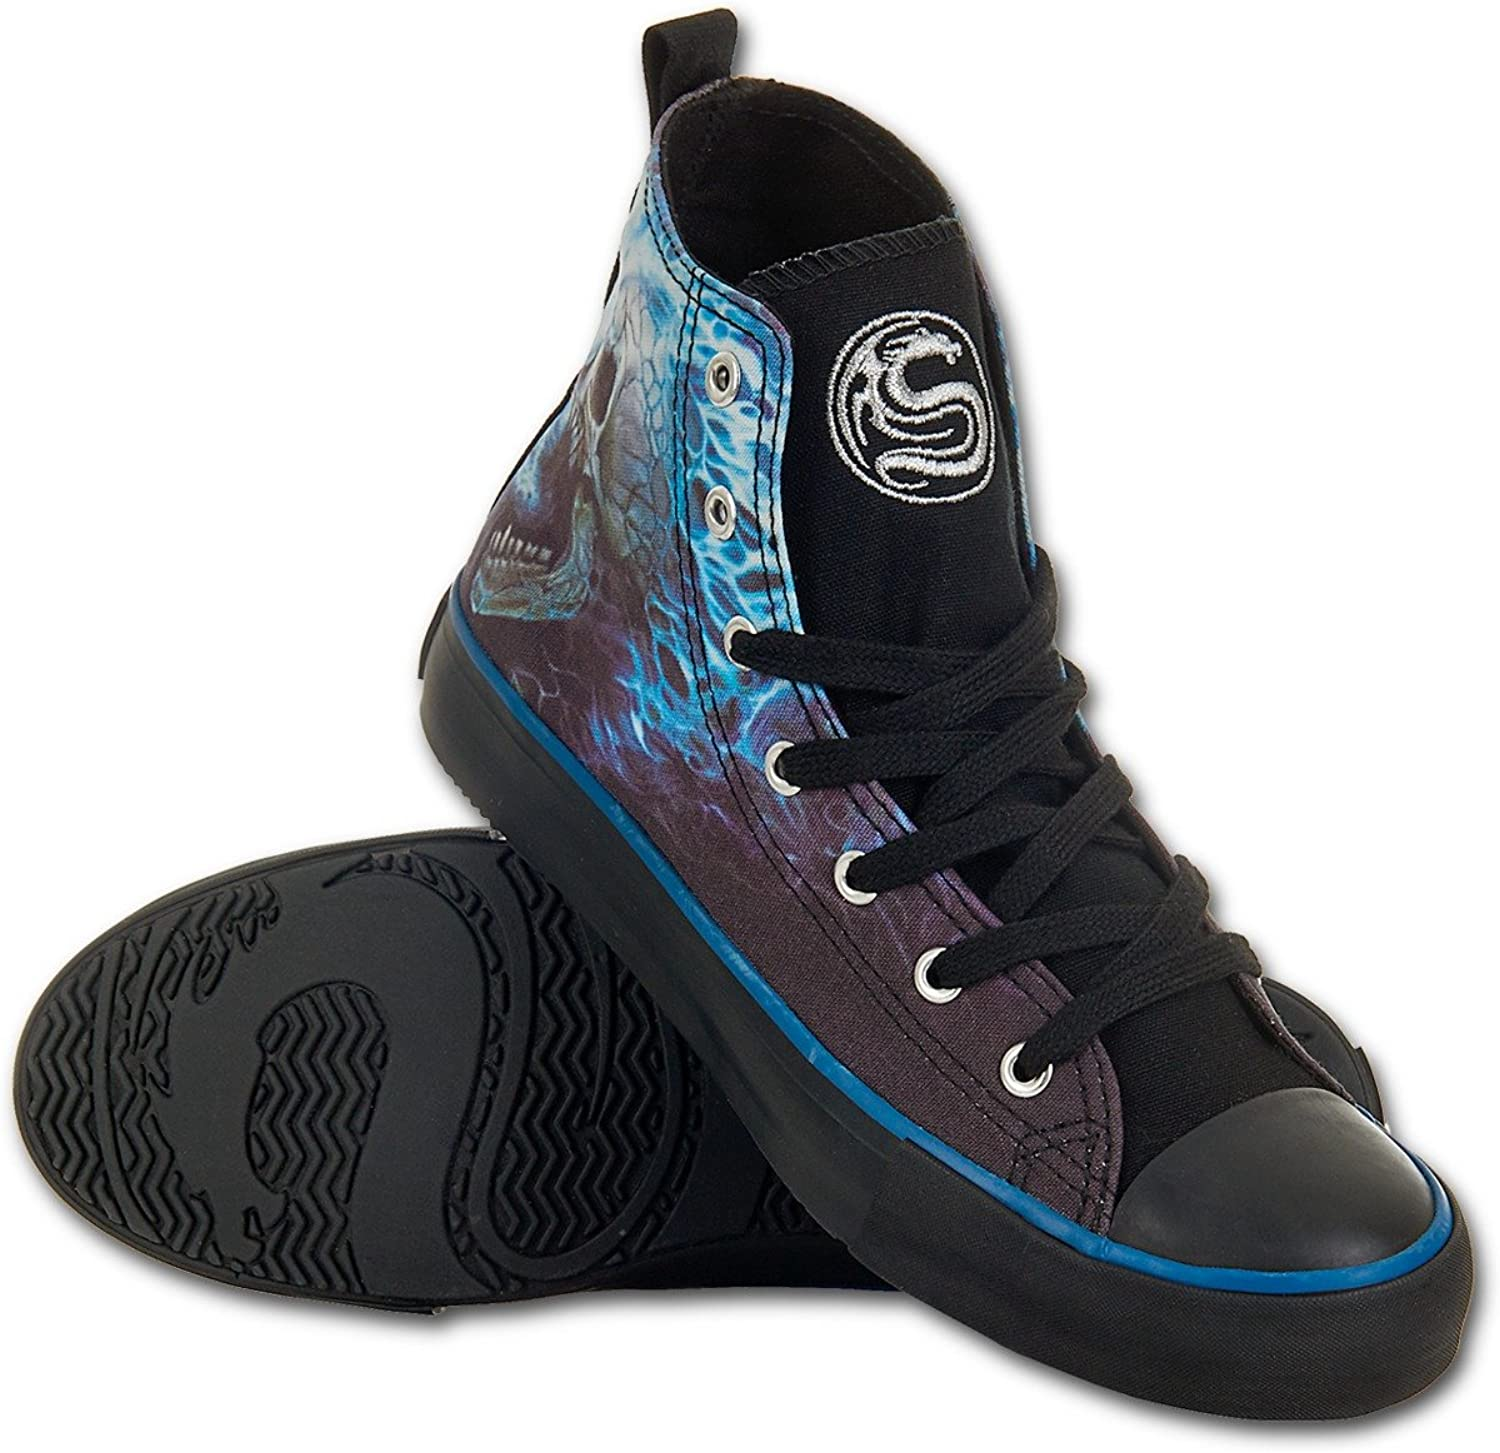 Spiral Womens - Flaming Spine - Sneakers - Ladies High Top Laceup